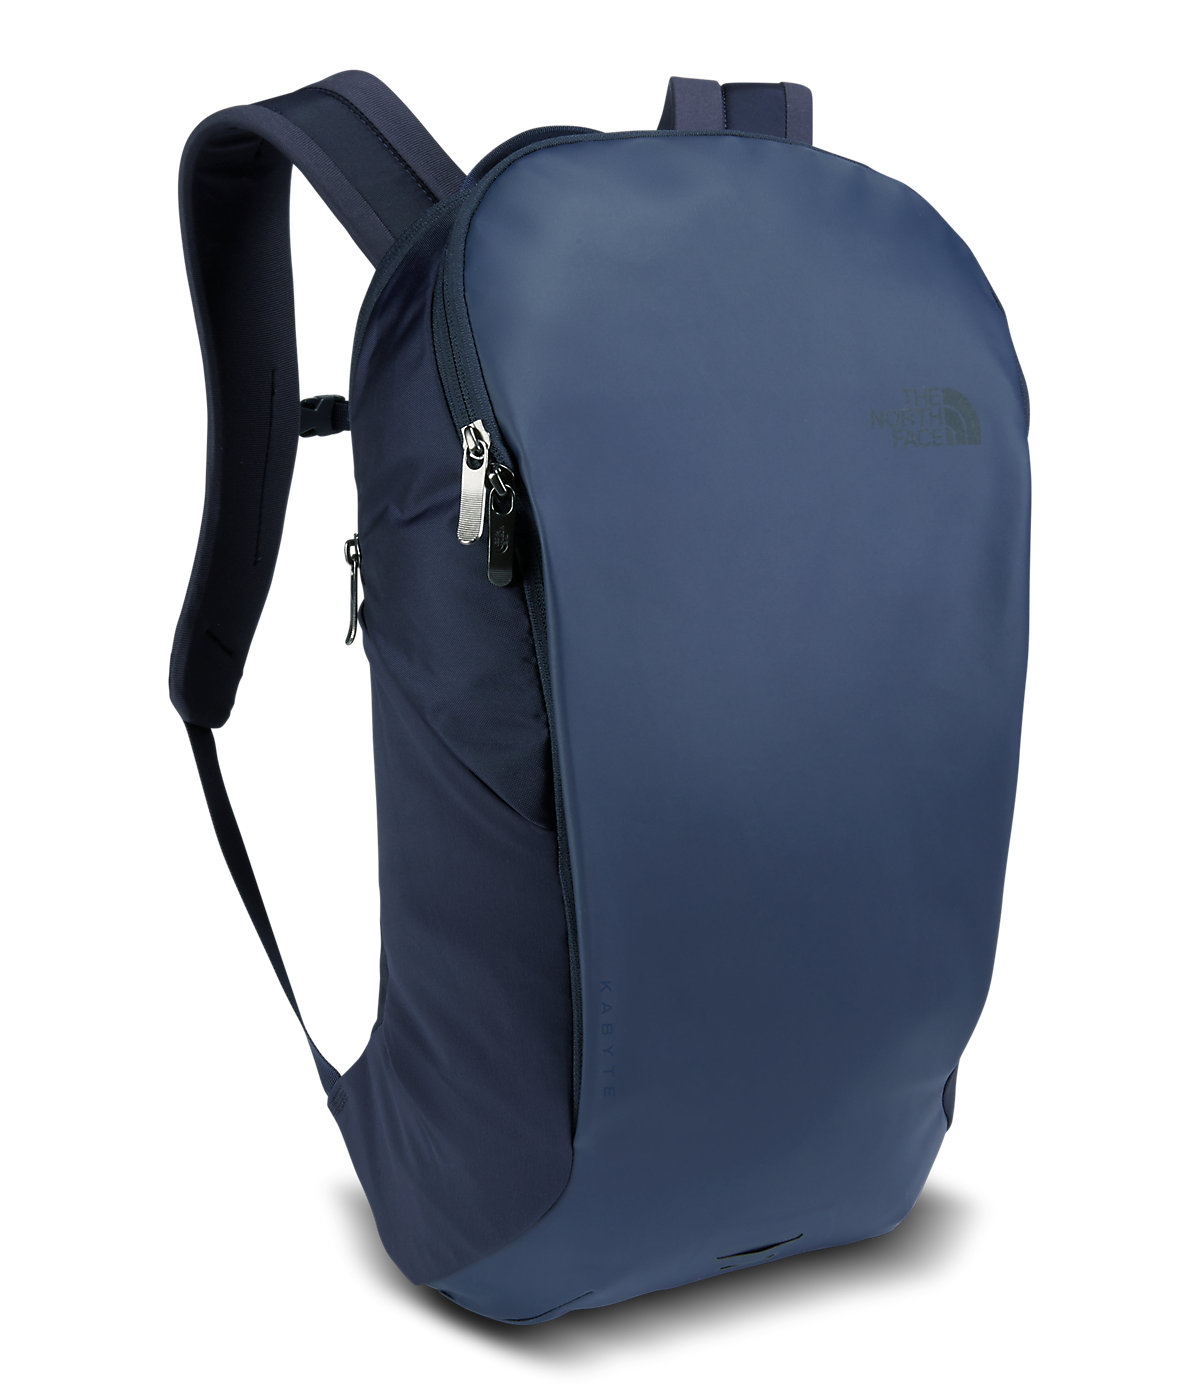 2f08df58e Kabyte backpack in 2019 | Products | Backpacks, Men's backpack ...